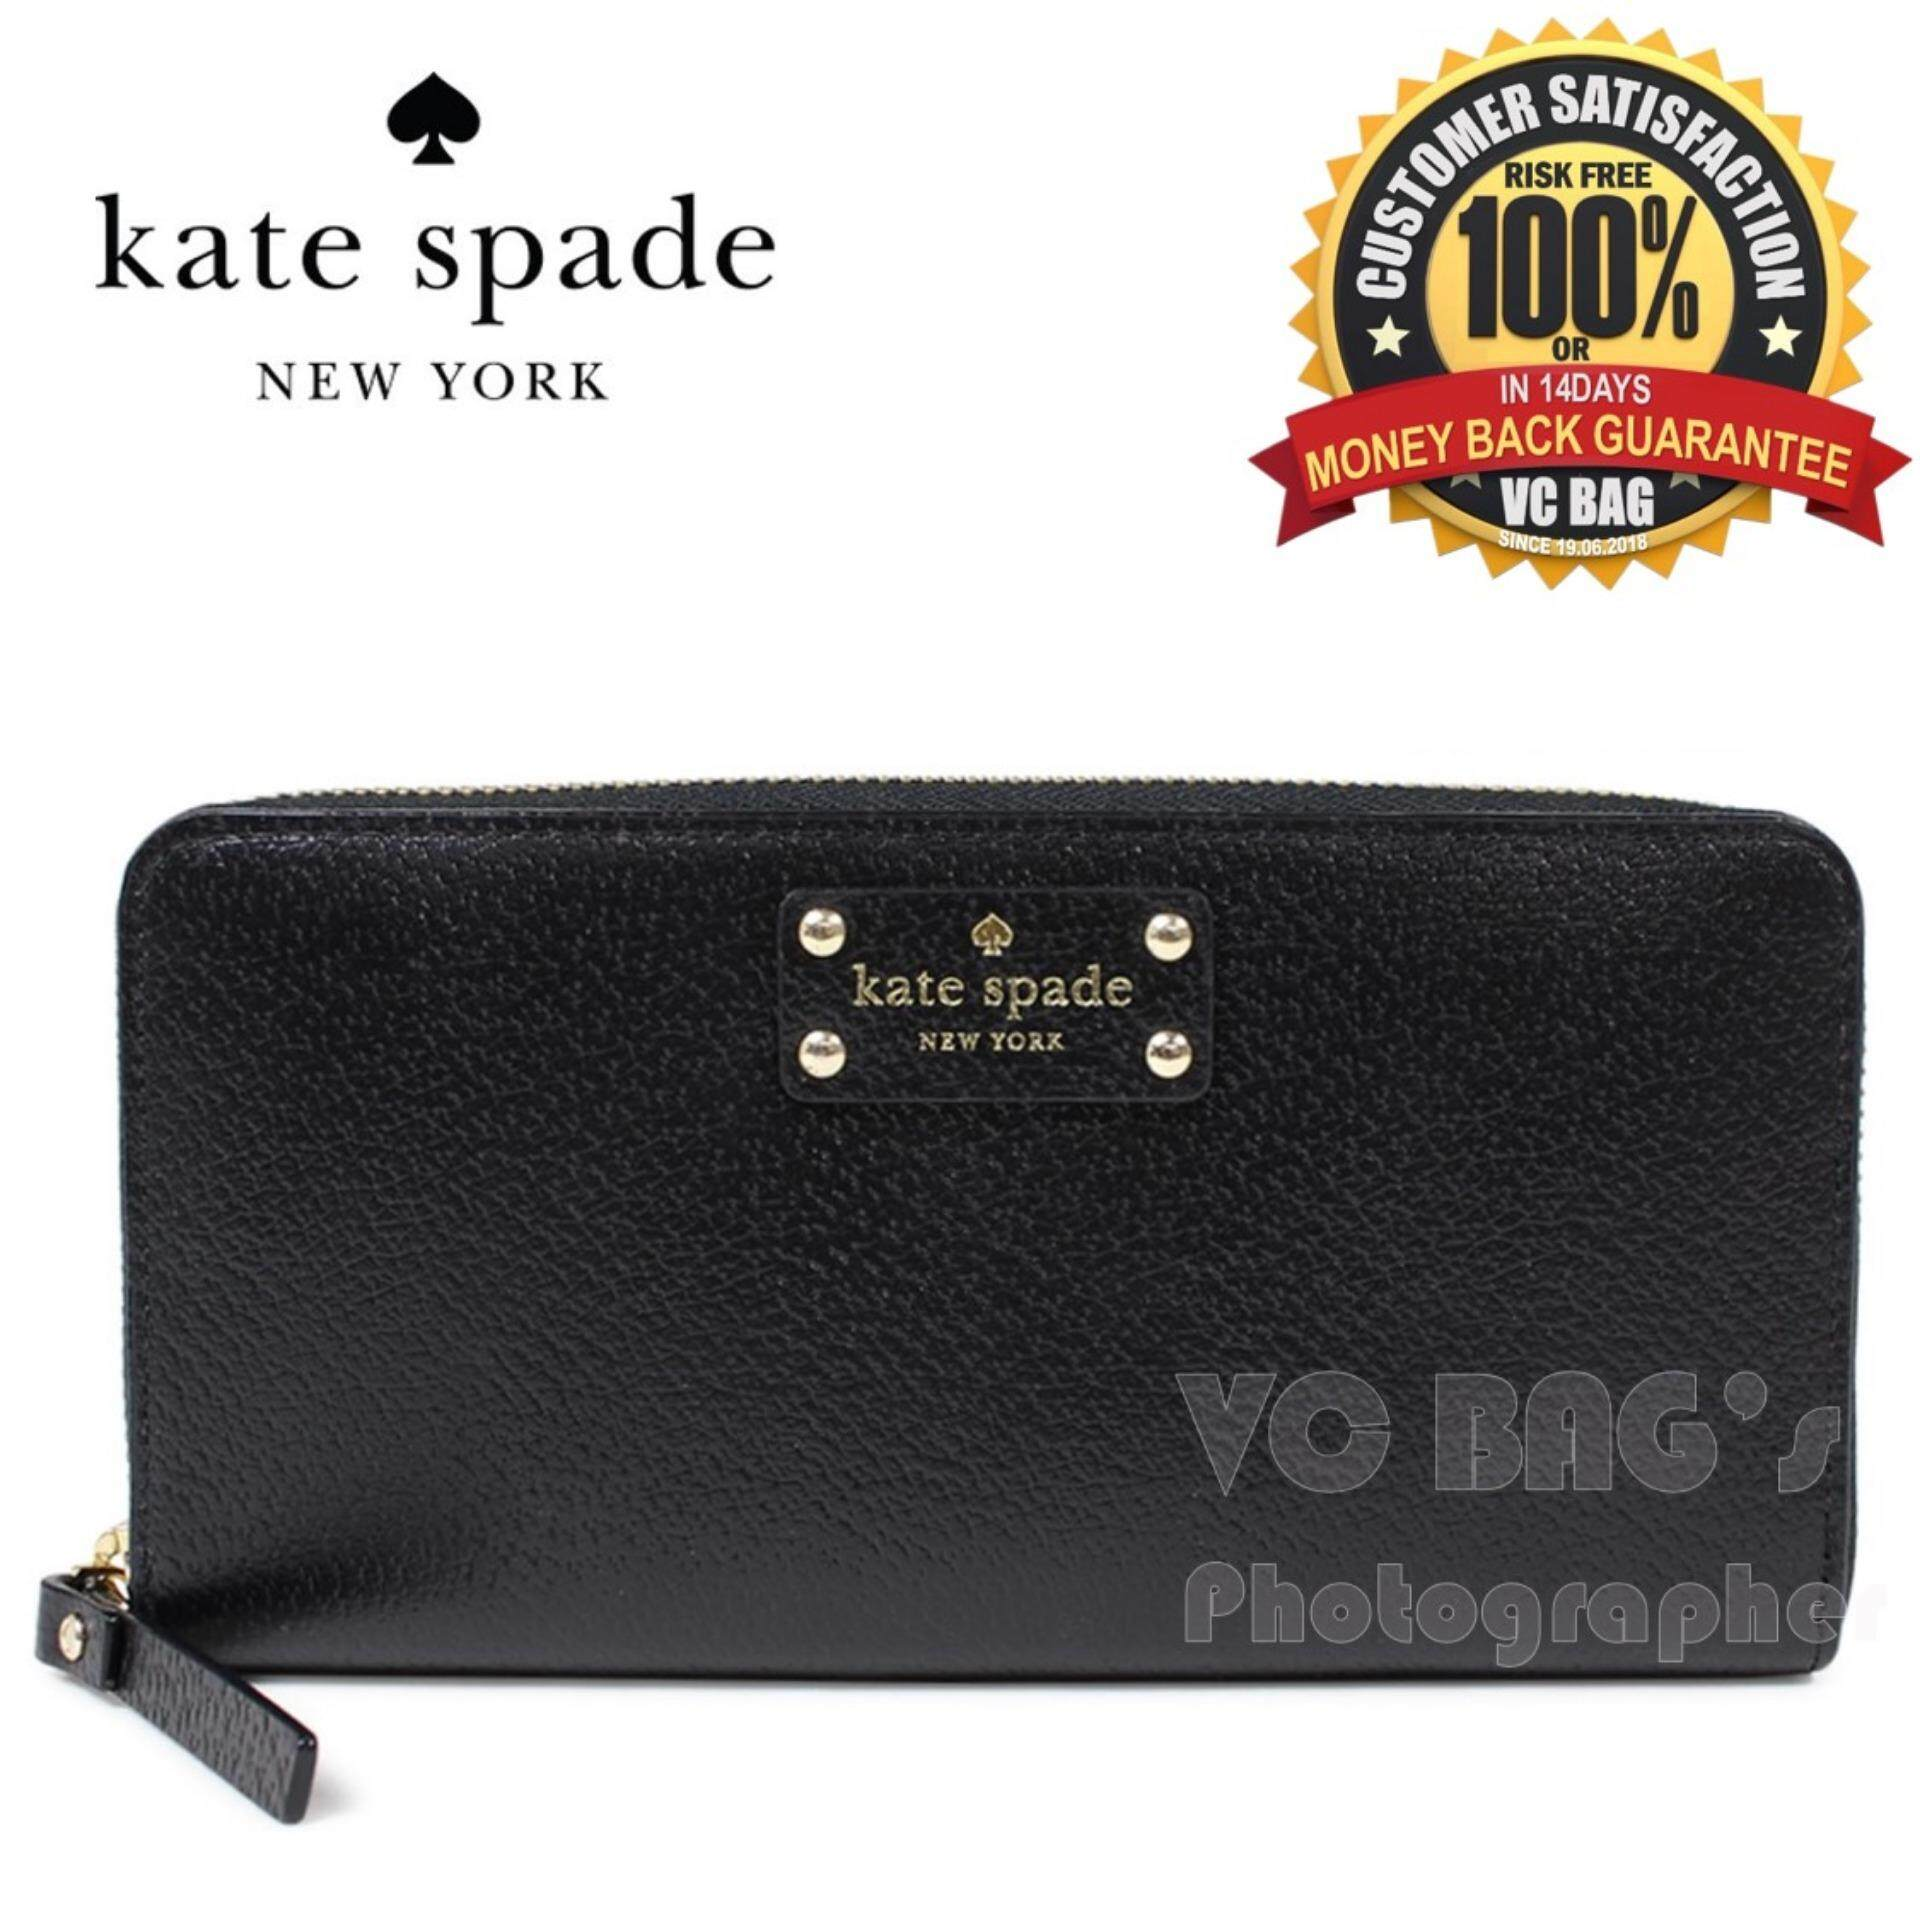 9f4e3ab588b Kate Spade Women Bags price in Malaysia - Best Kate Spade Women Bags ...